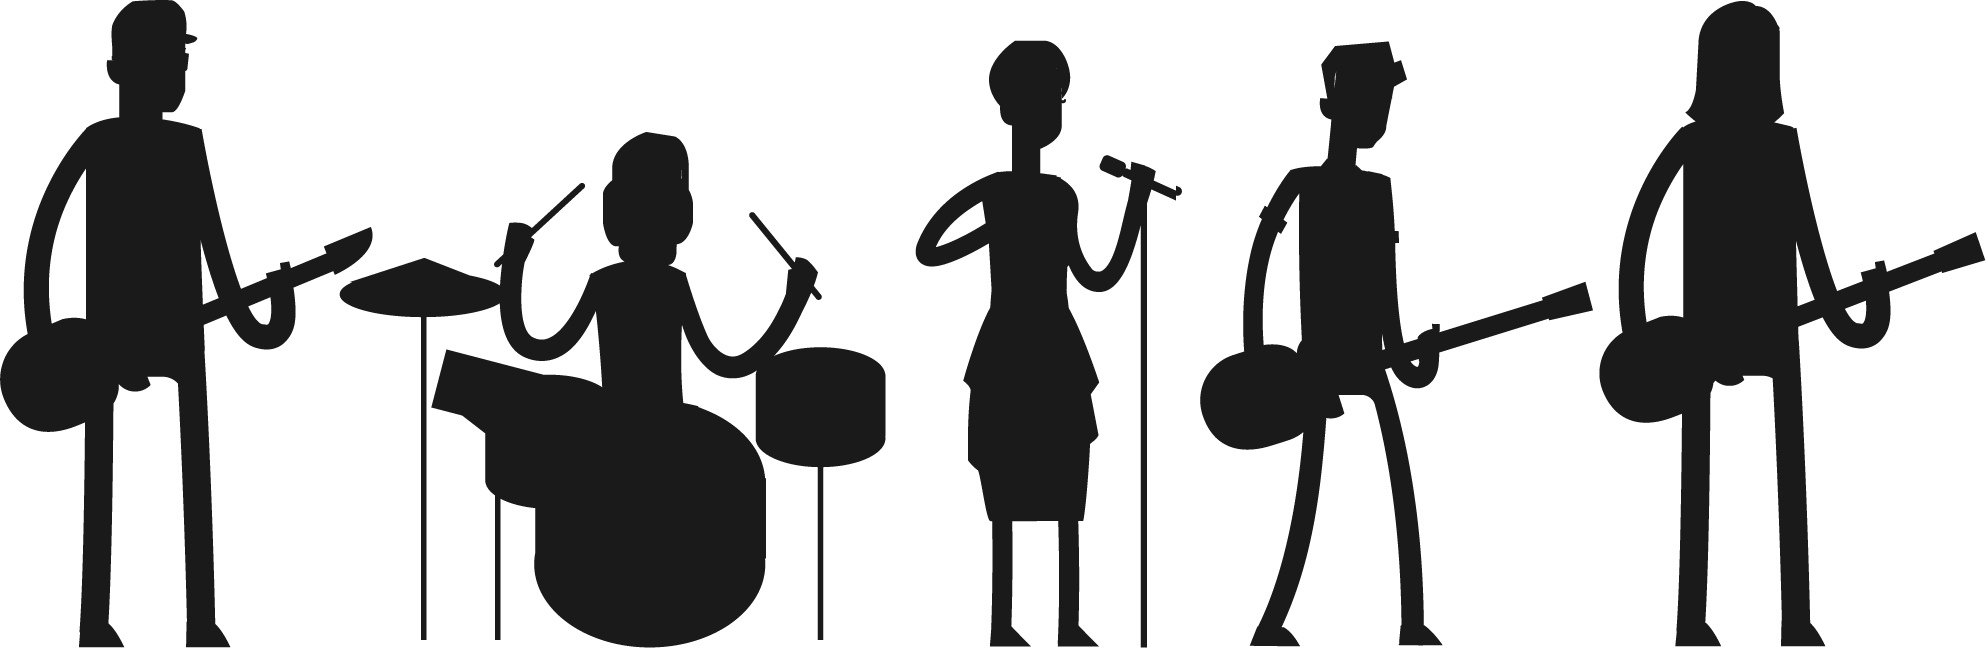 hight resolution of rock band silhouette png pop transparent images pluspng